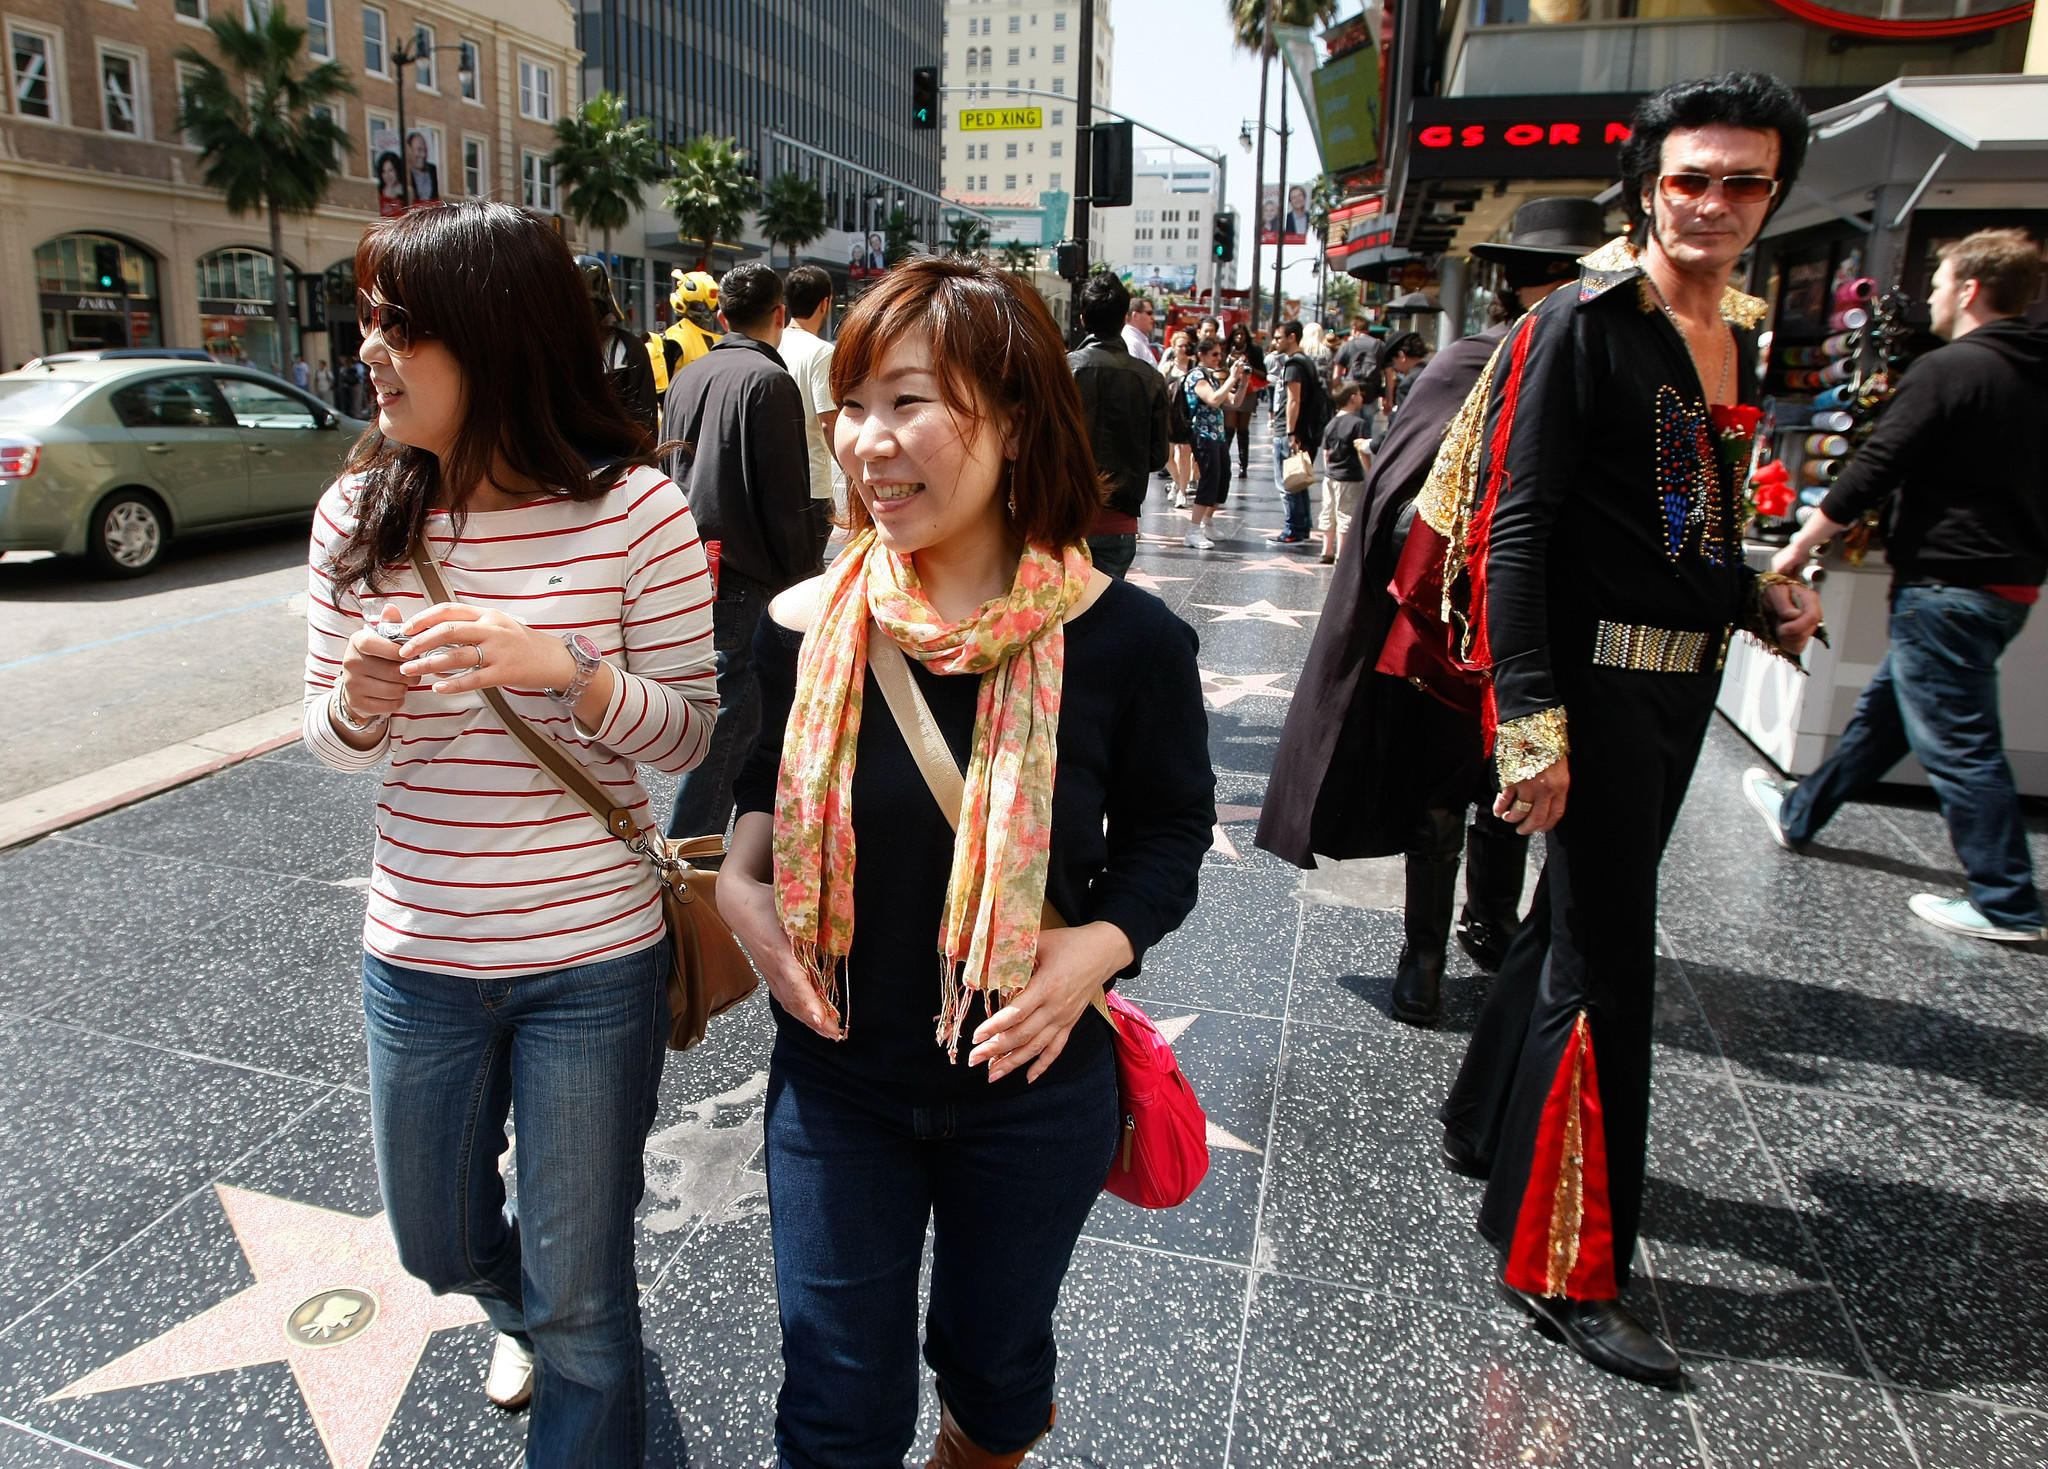 Tourists Miwako Tsugawa, left, and Yuka Watanabe, from Nagoya, Japan, check out the sights while walking along Hollywood Boulevard.